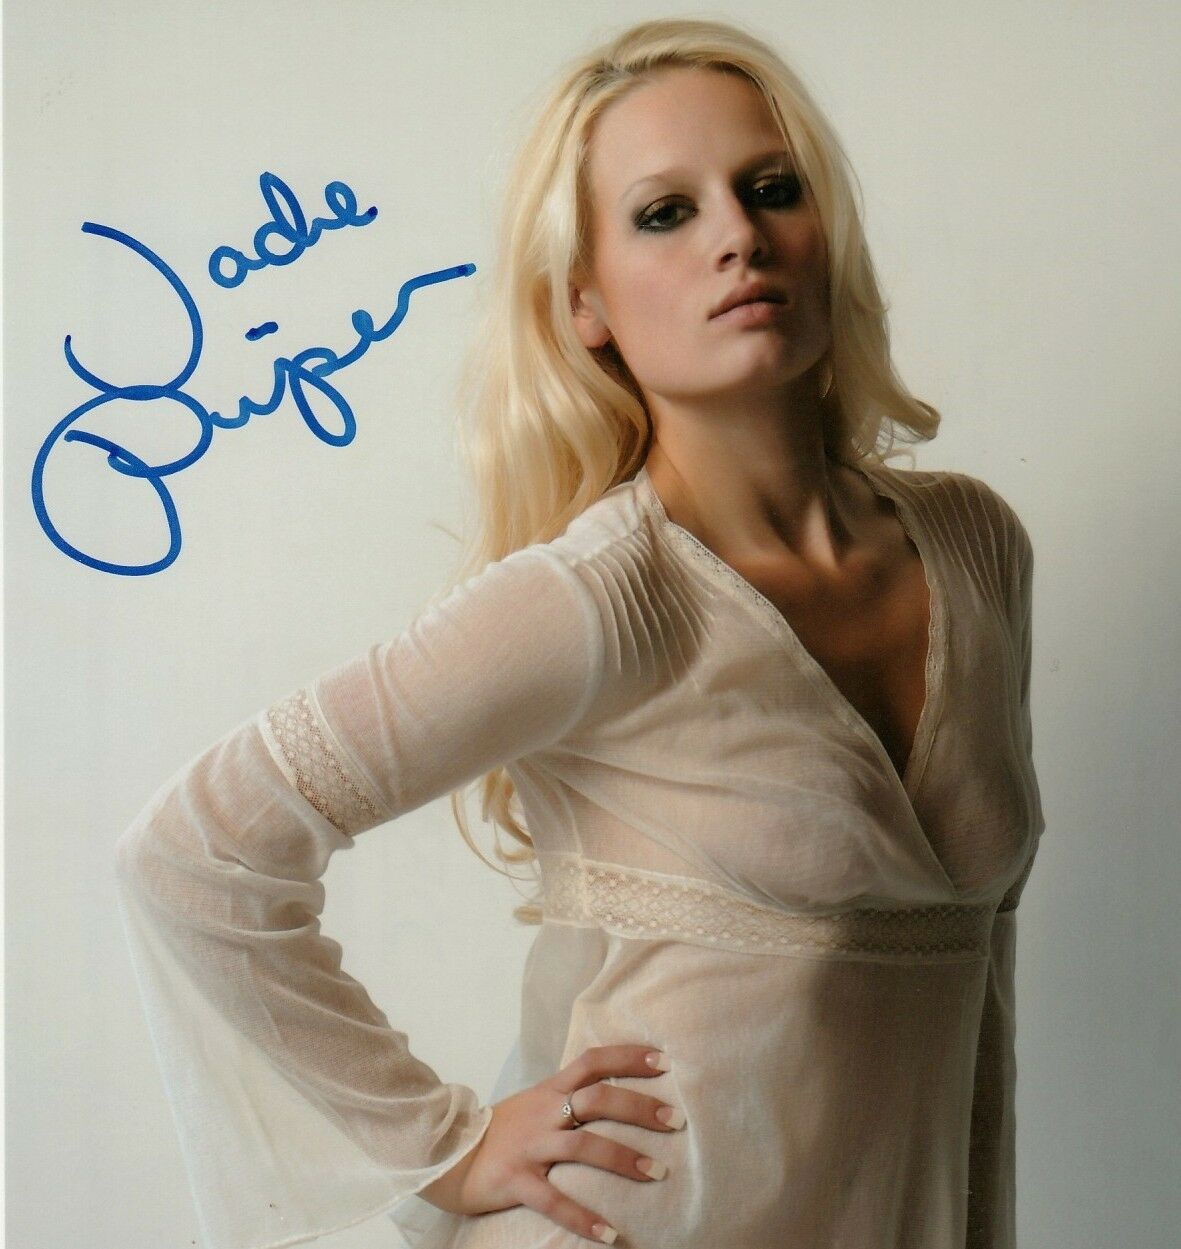 JADE PIPER Hand-signed NO PANTIES HOT SEDUCTIVE Color 8x10 Uacc Rd Coa IN-PERSON - $19.99